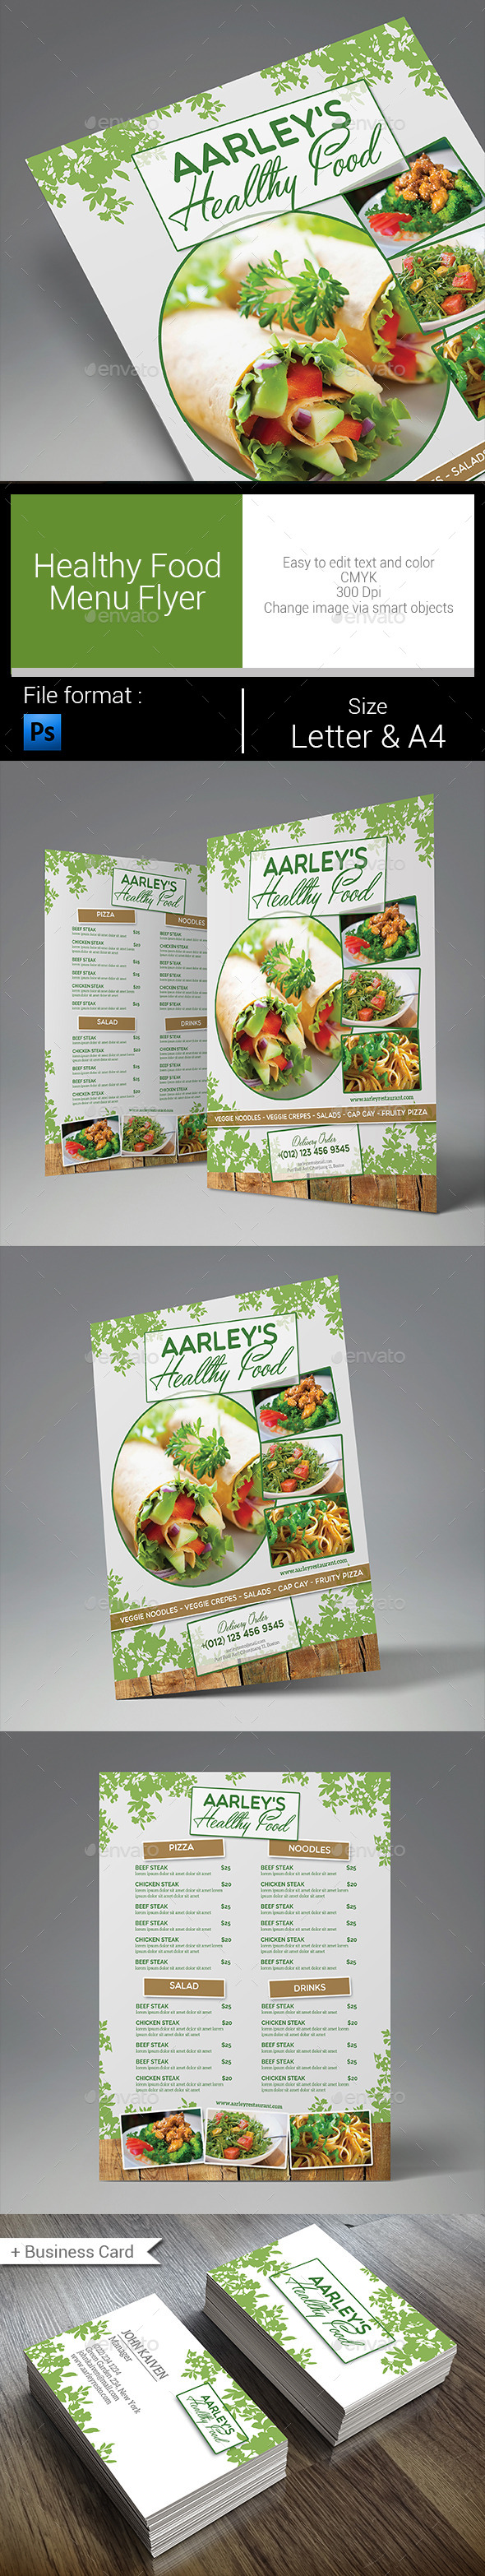 Healthy Food Menu Flyer - Food Menus Print Templates